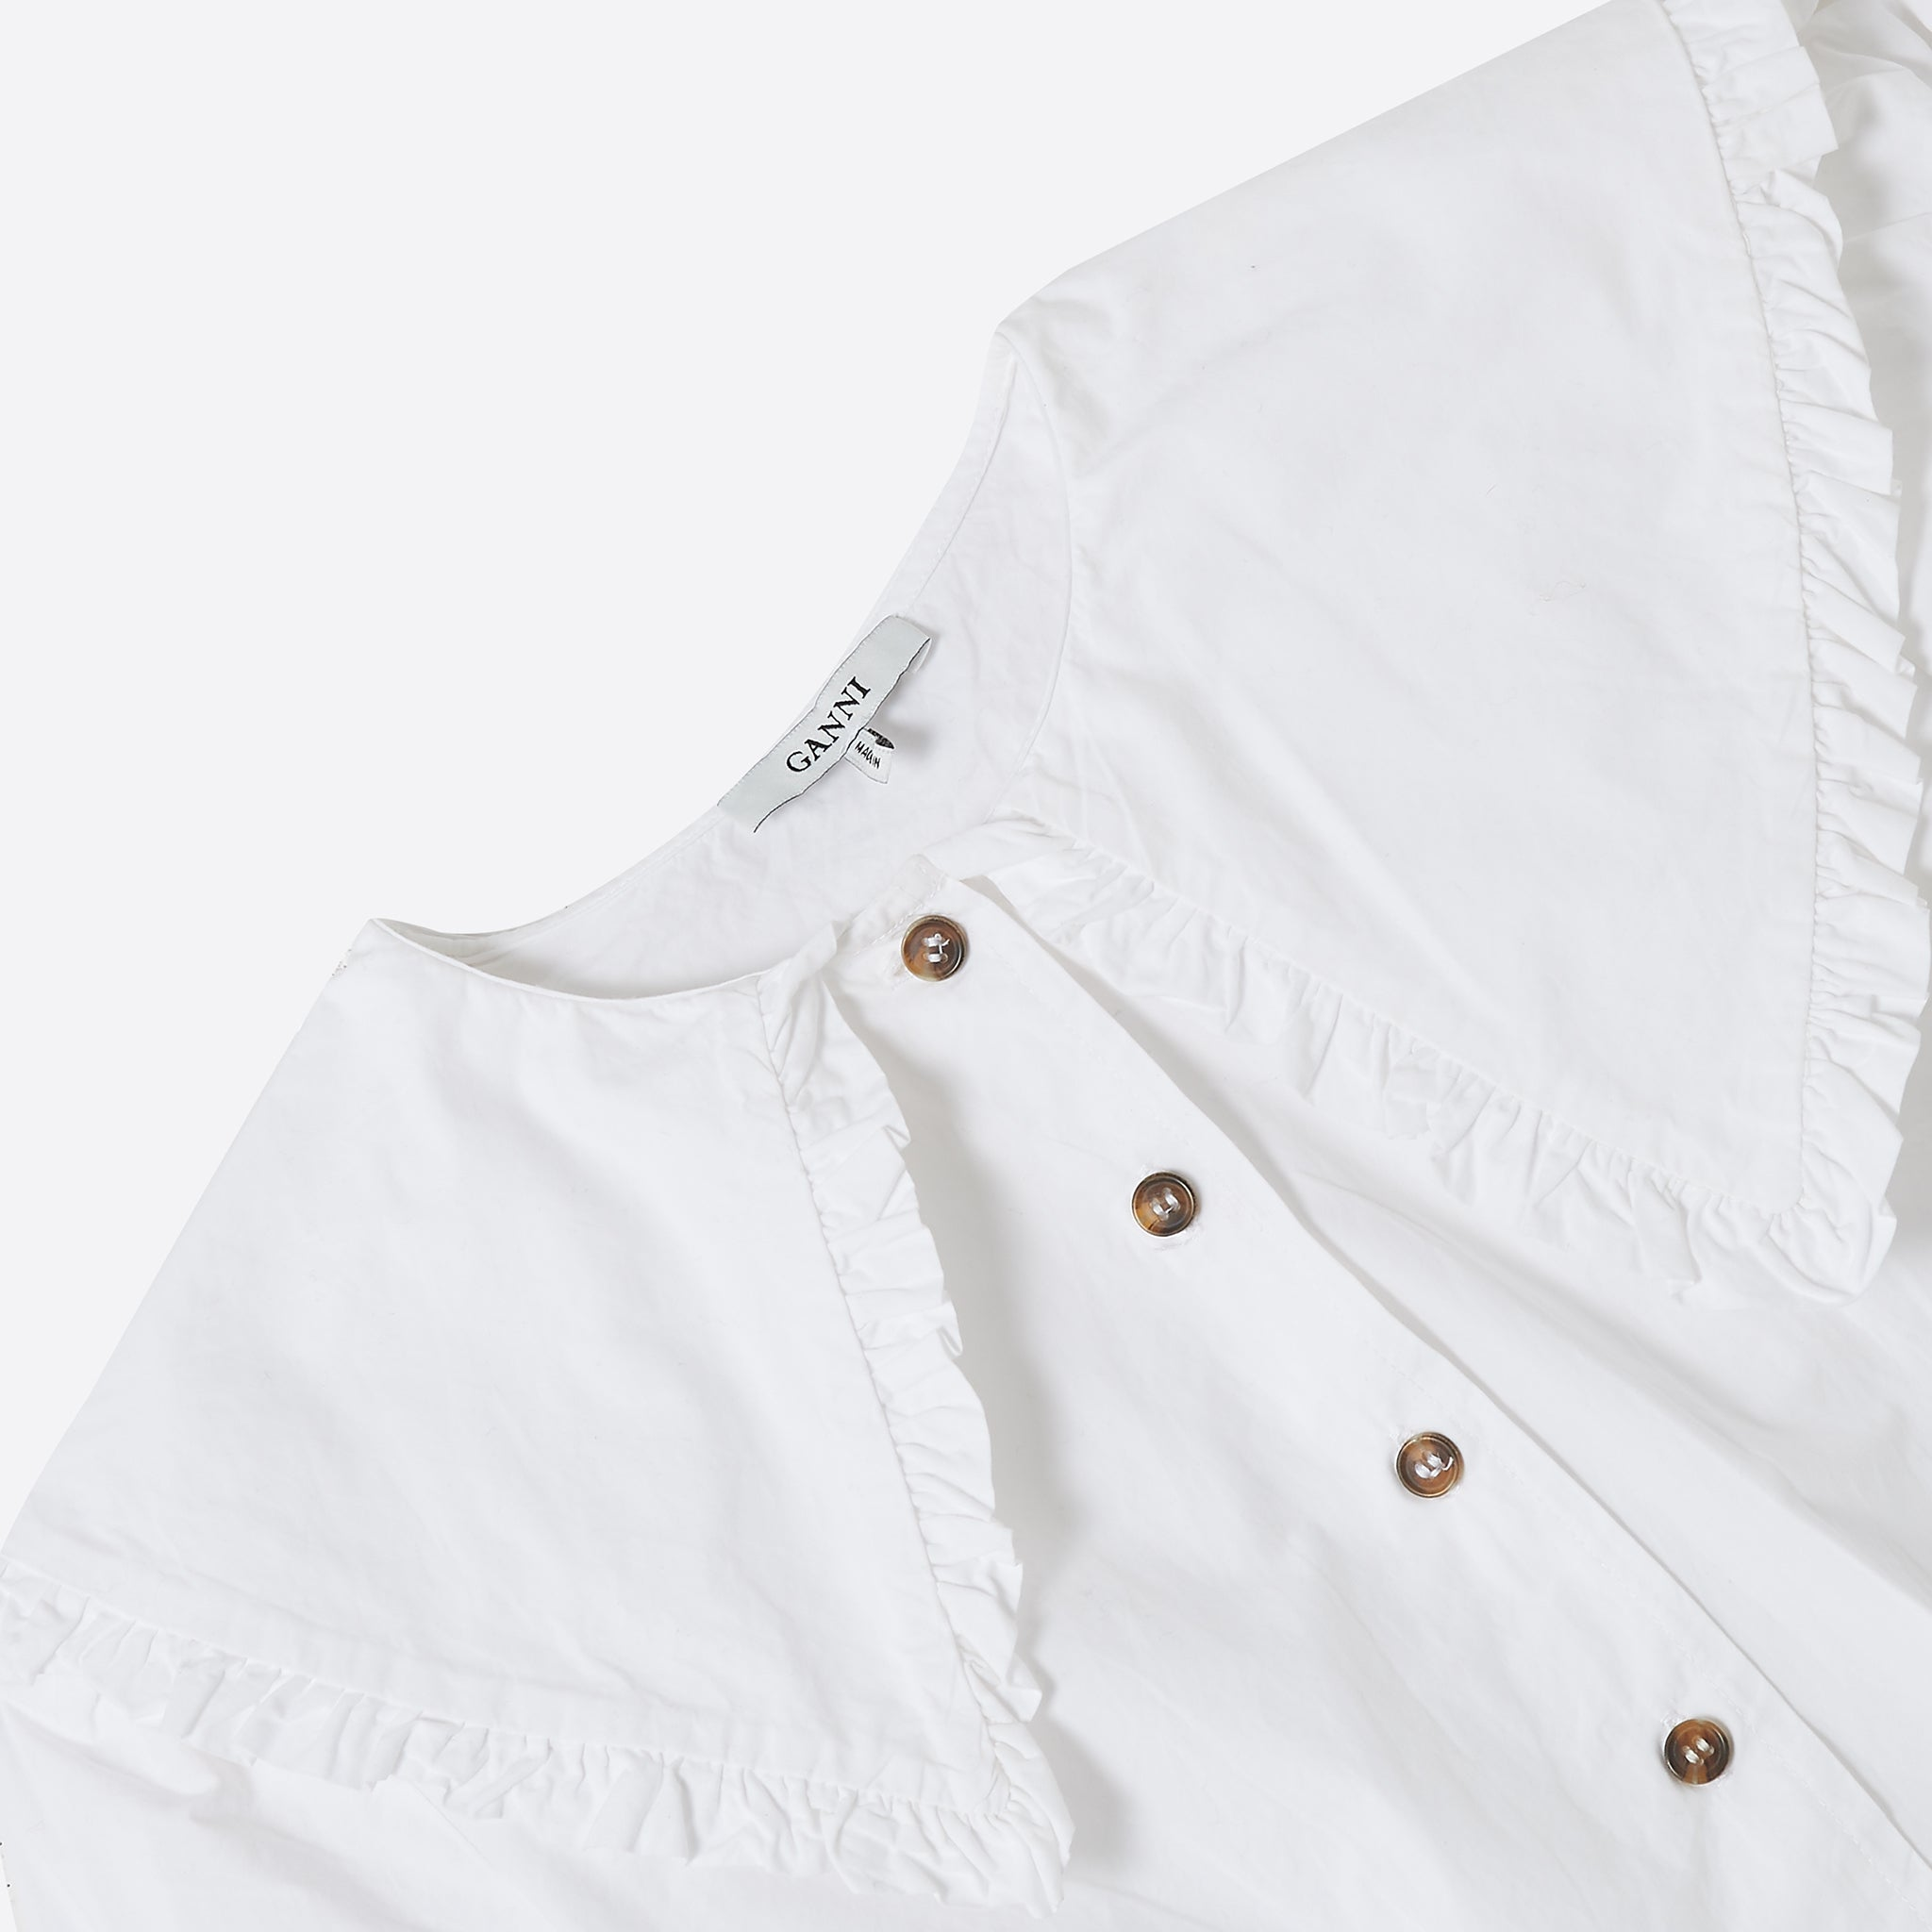 Ganni Olayan Cropped Shirt in White